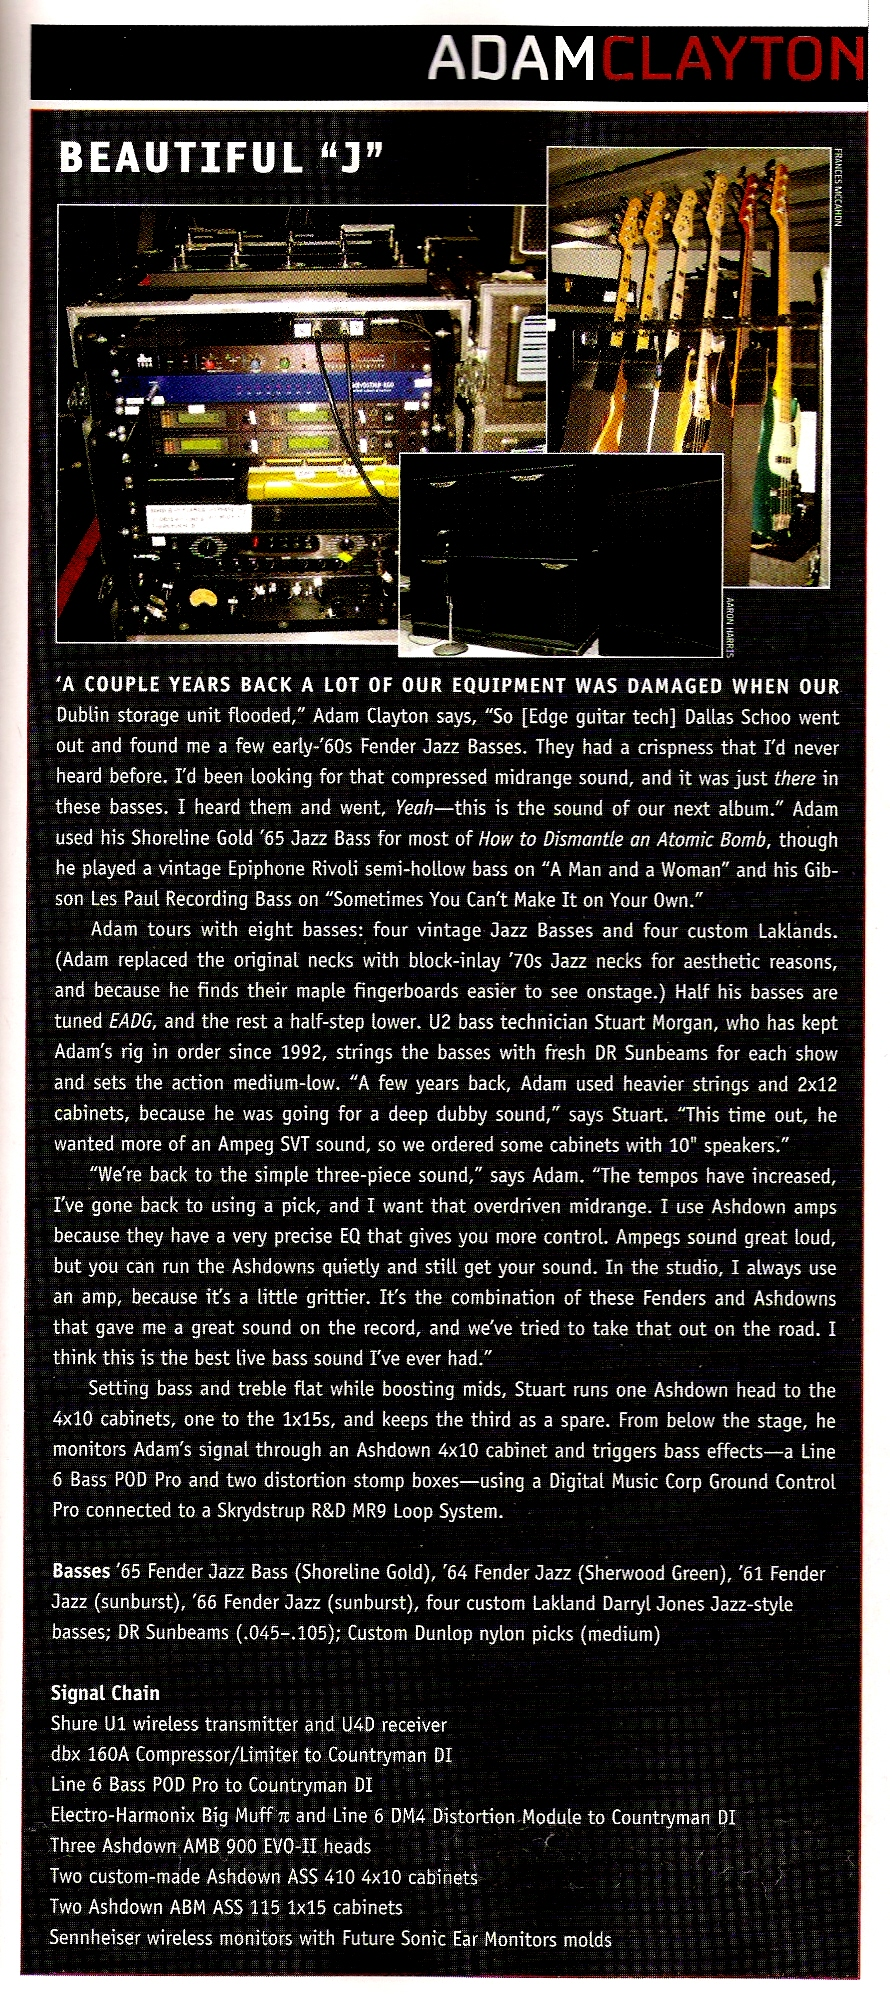 bass_player-january_2006-adam_clayton-beautiful_gear_sidebar.jpg